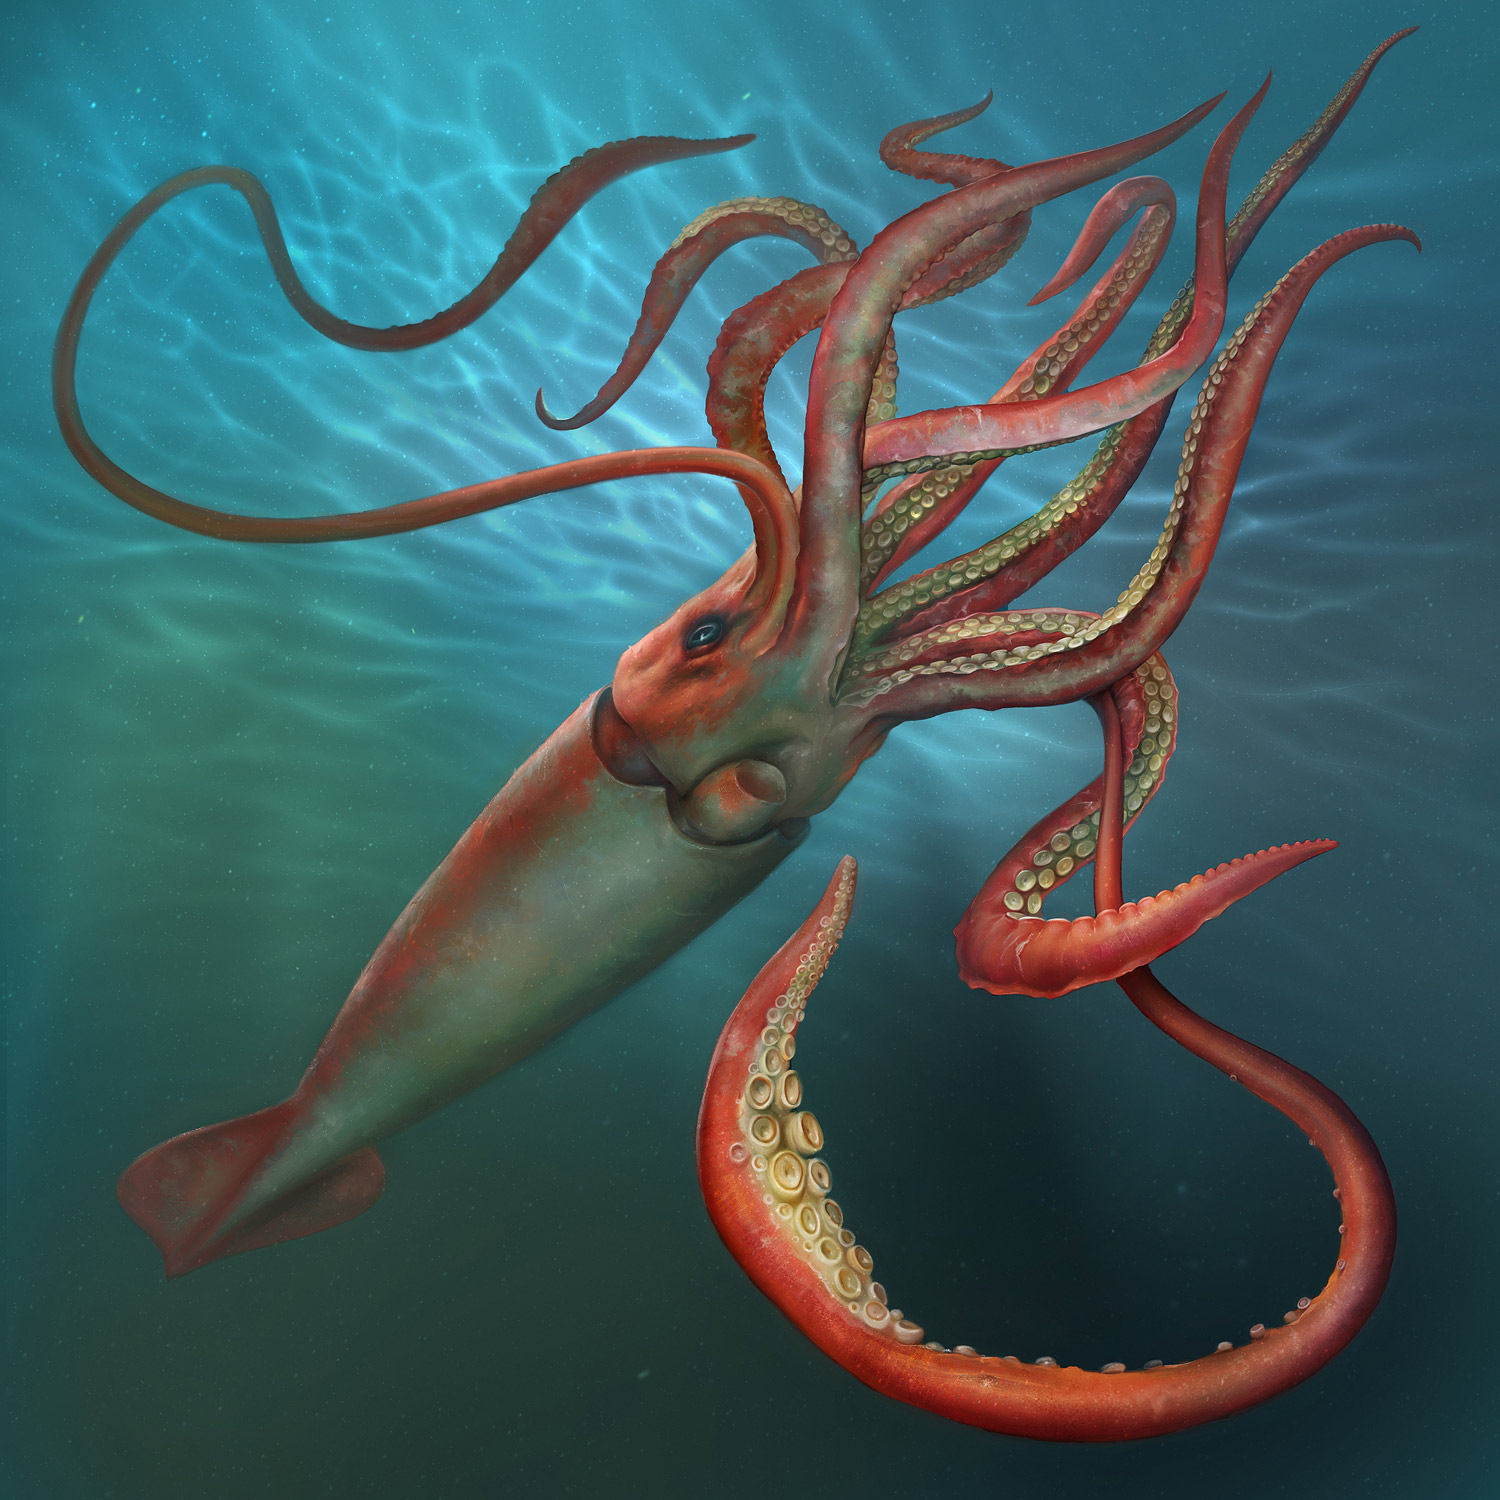 Giant Squid by EldarZakirov on DeviantArt